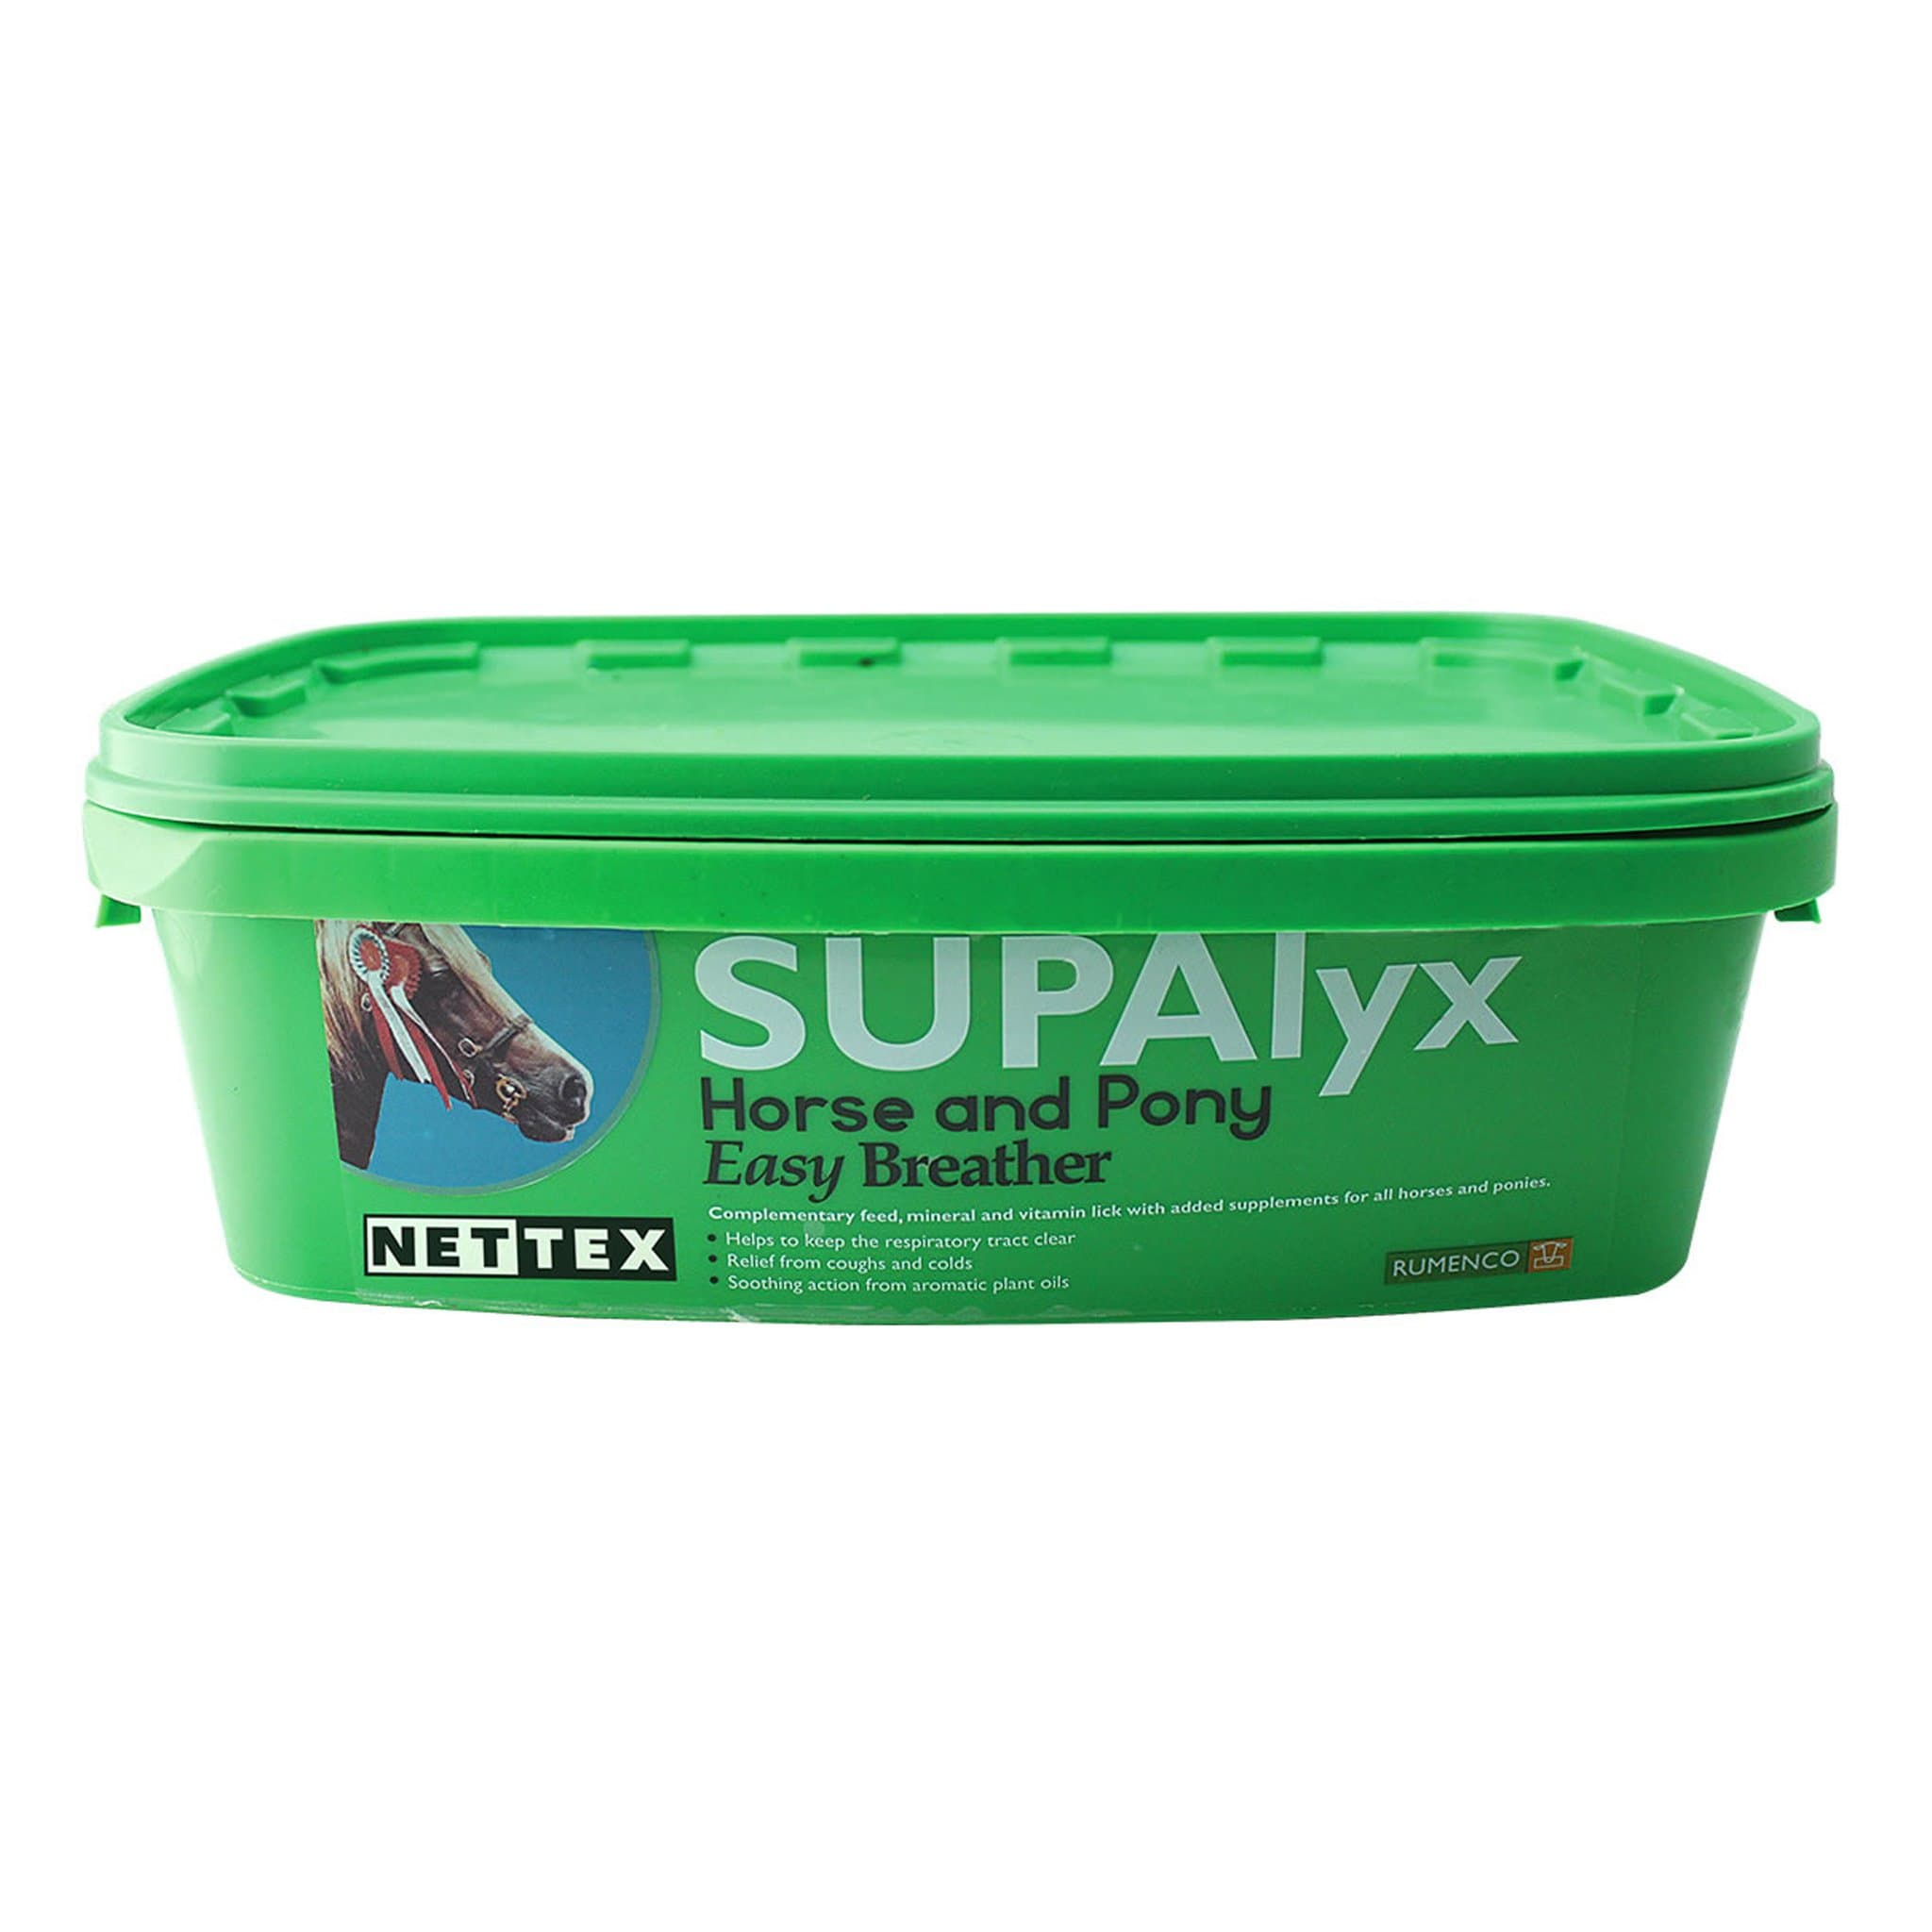 Nettex Equine Supalyx Easy Breather NET0340 12.5kg